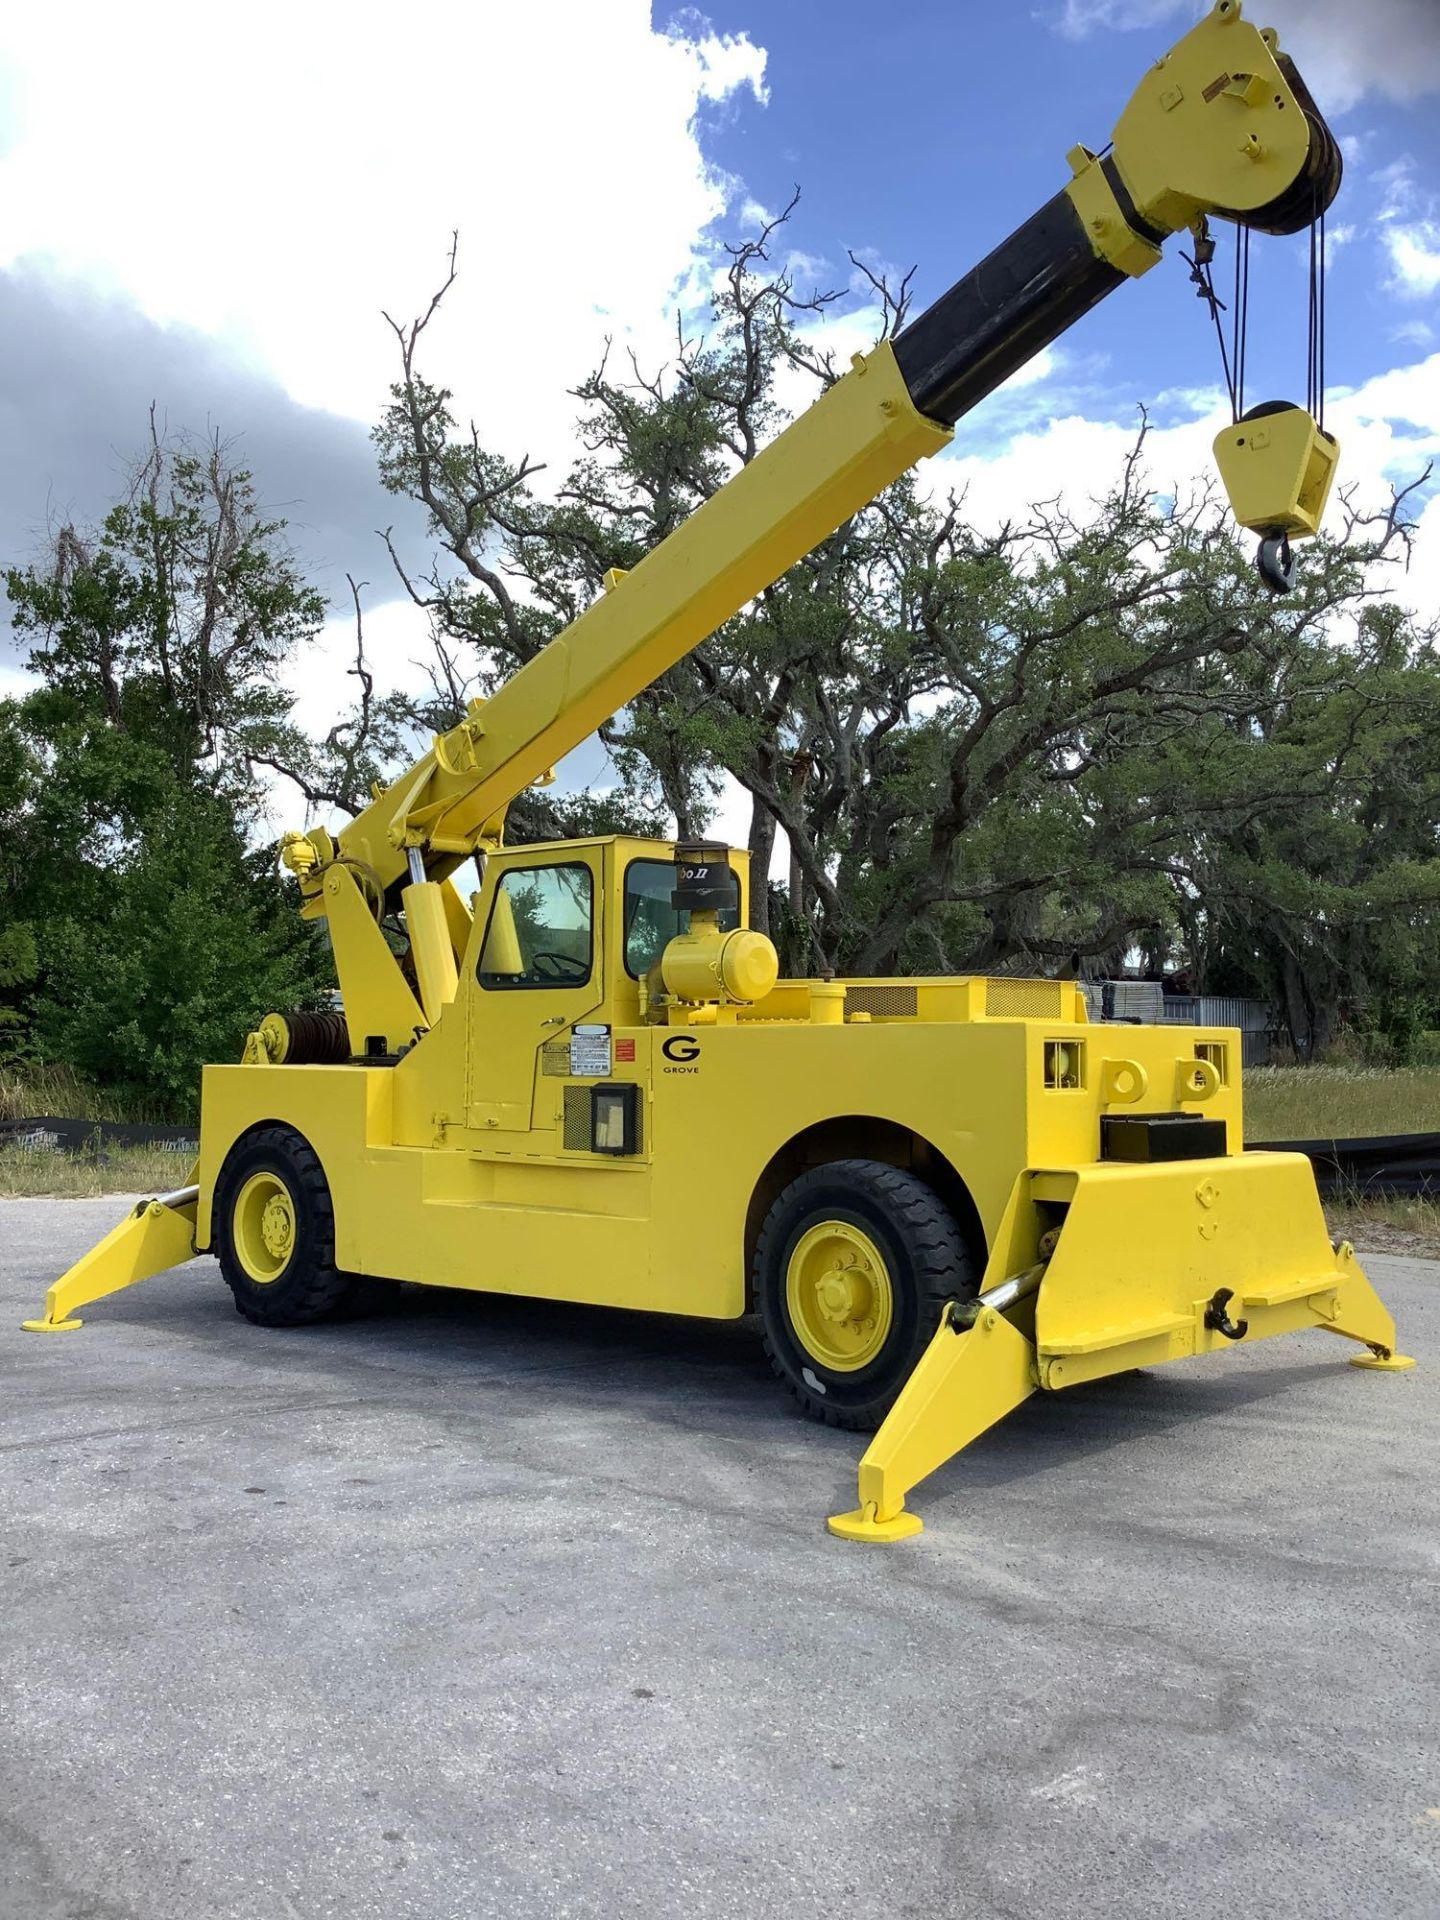 GROVE TRUCK CRANE MODEL IND1012, HYDRAULIC, TELESCOPIC, DIESEL,OUTRIGGER, RUNS AND OPERATES